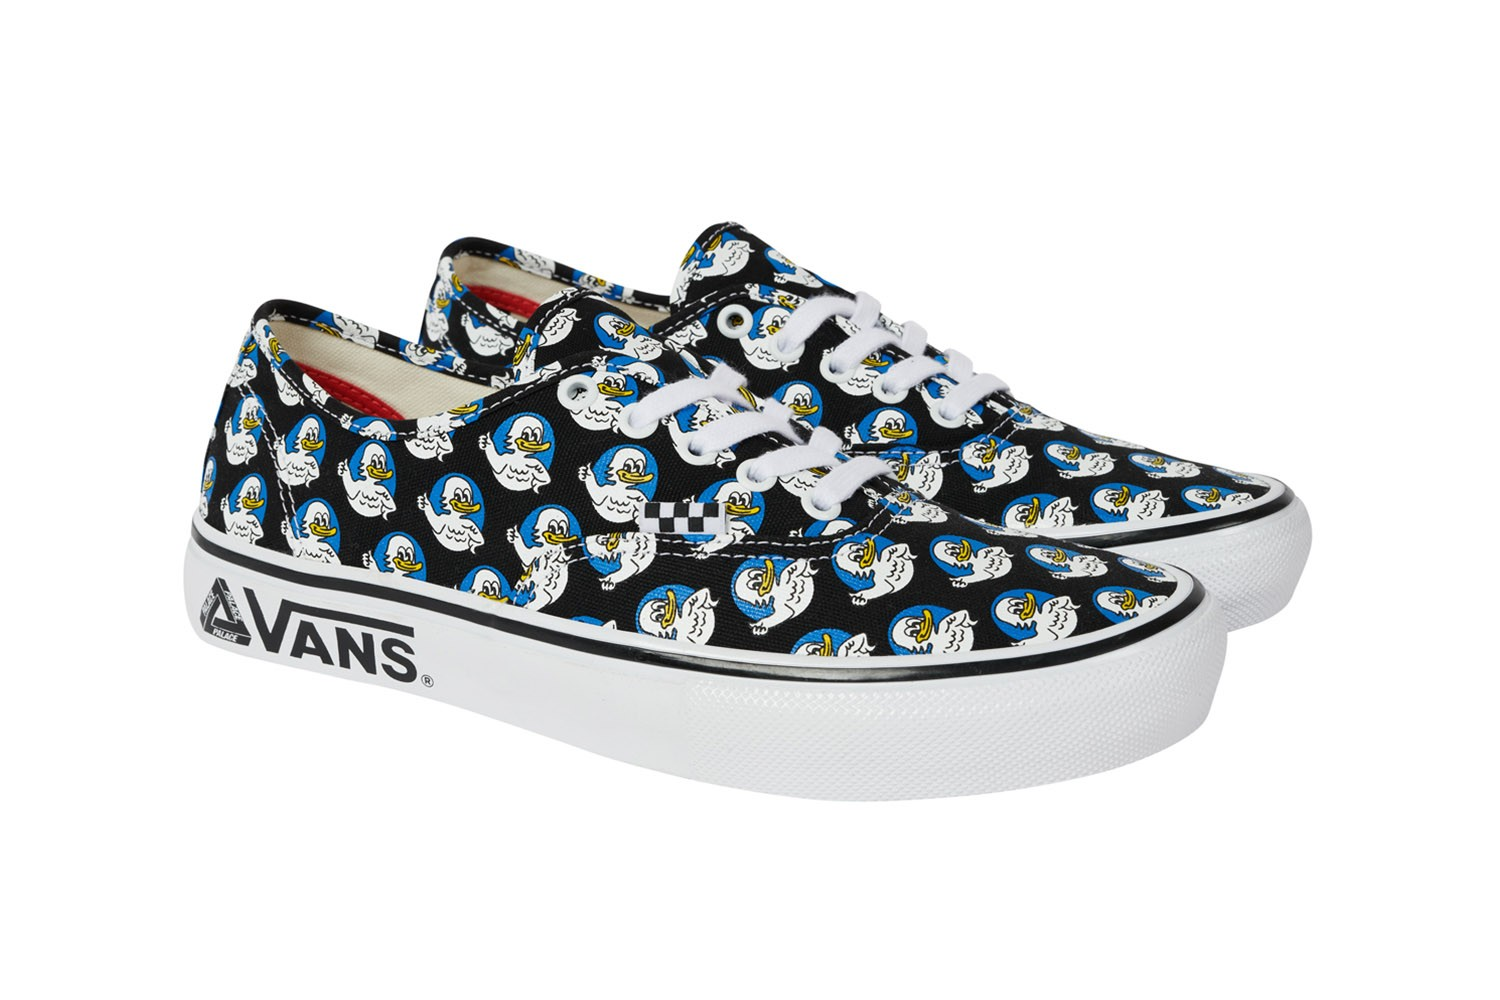 Vans x Palace Skateboards Collaboration Release Apparel Footwear Sneakers Pink White Blue Black